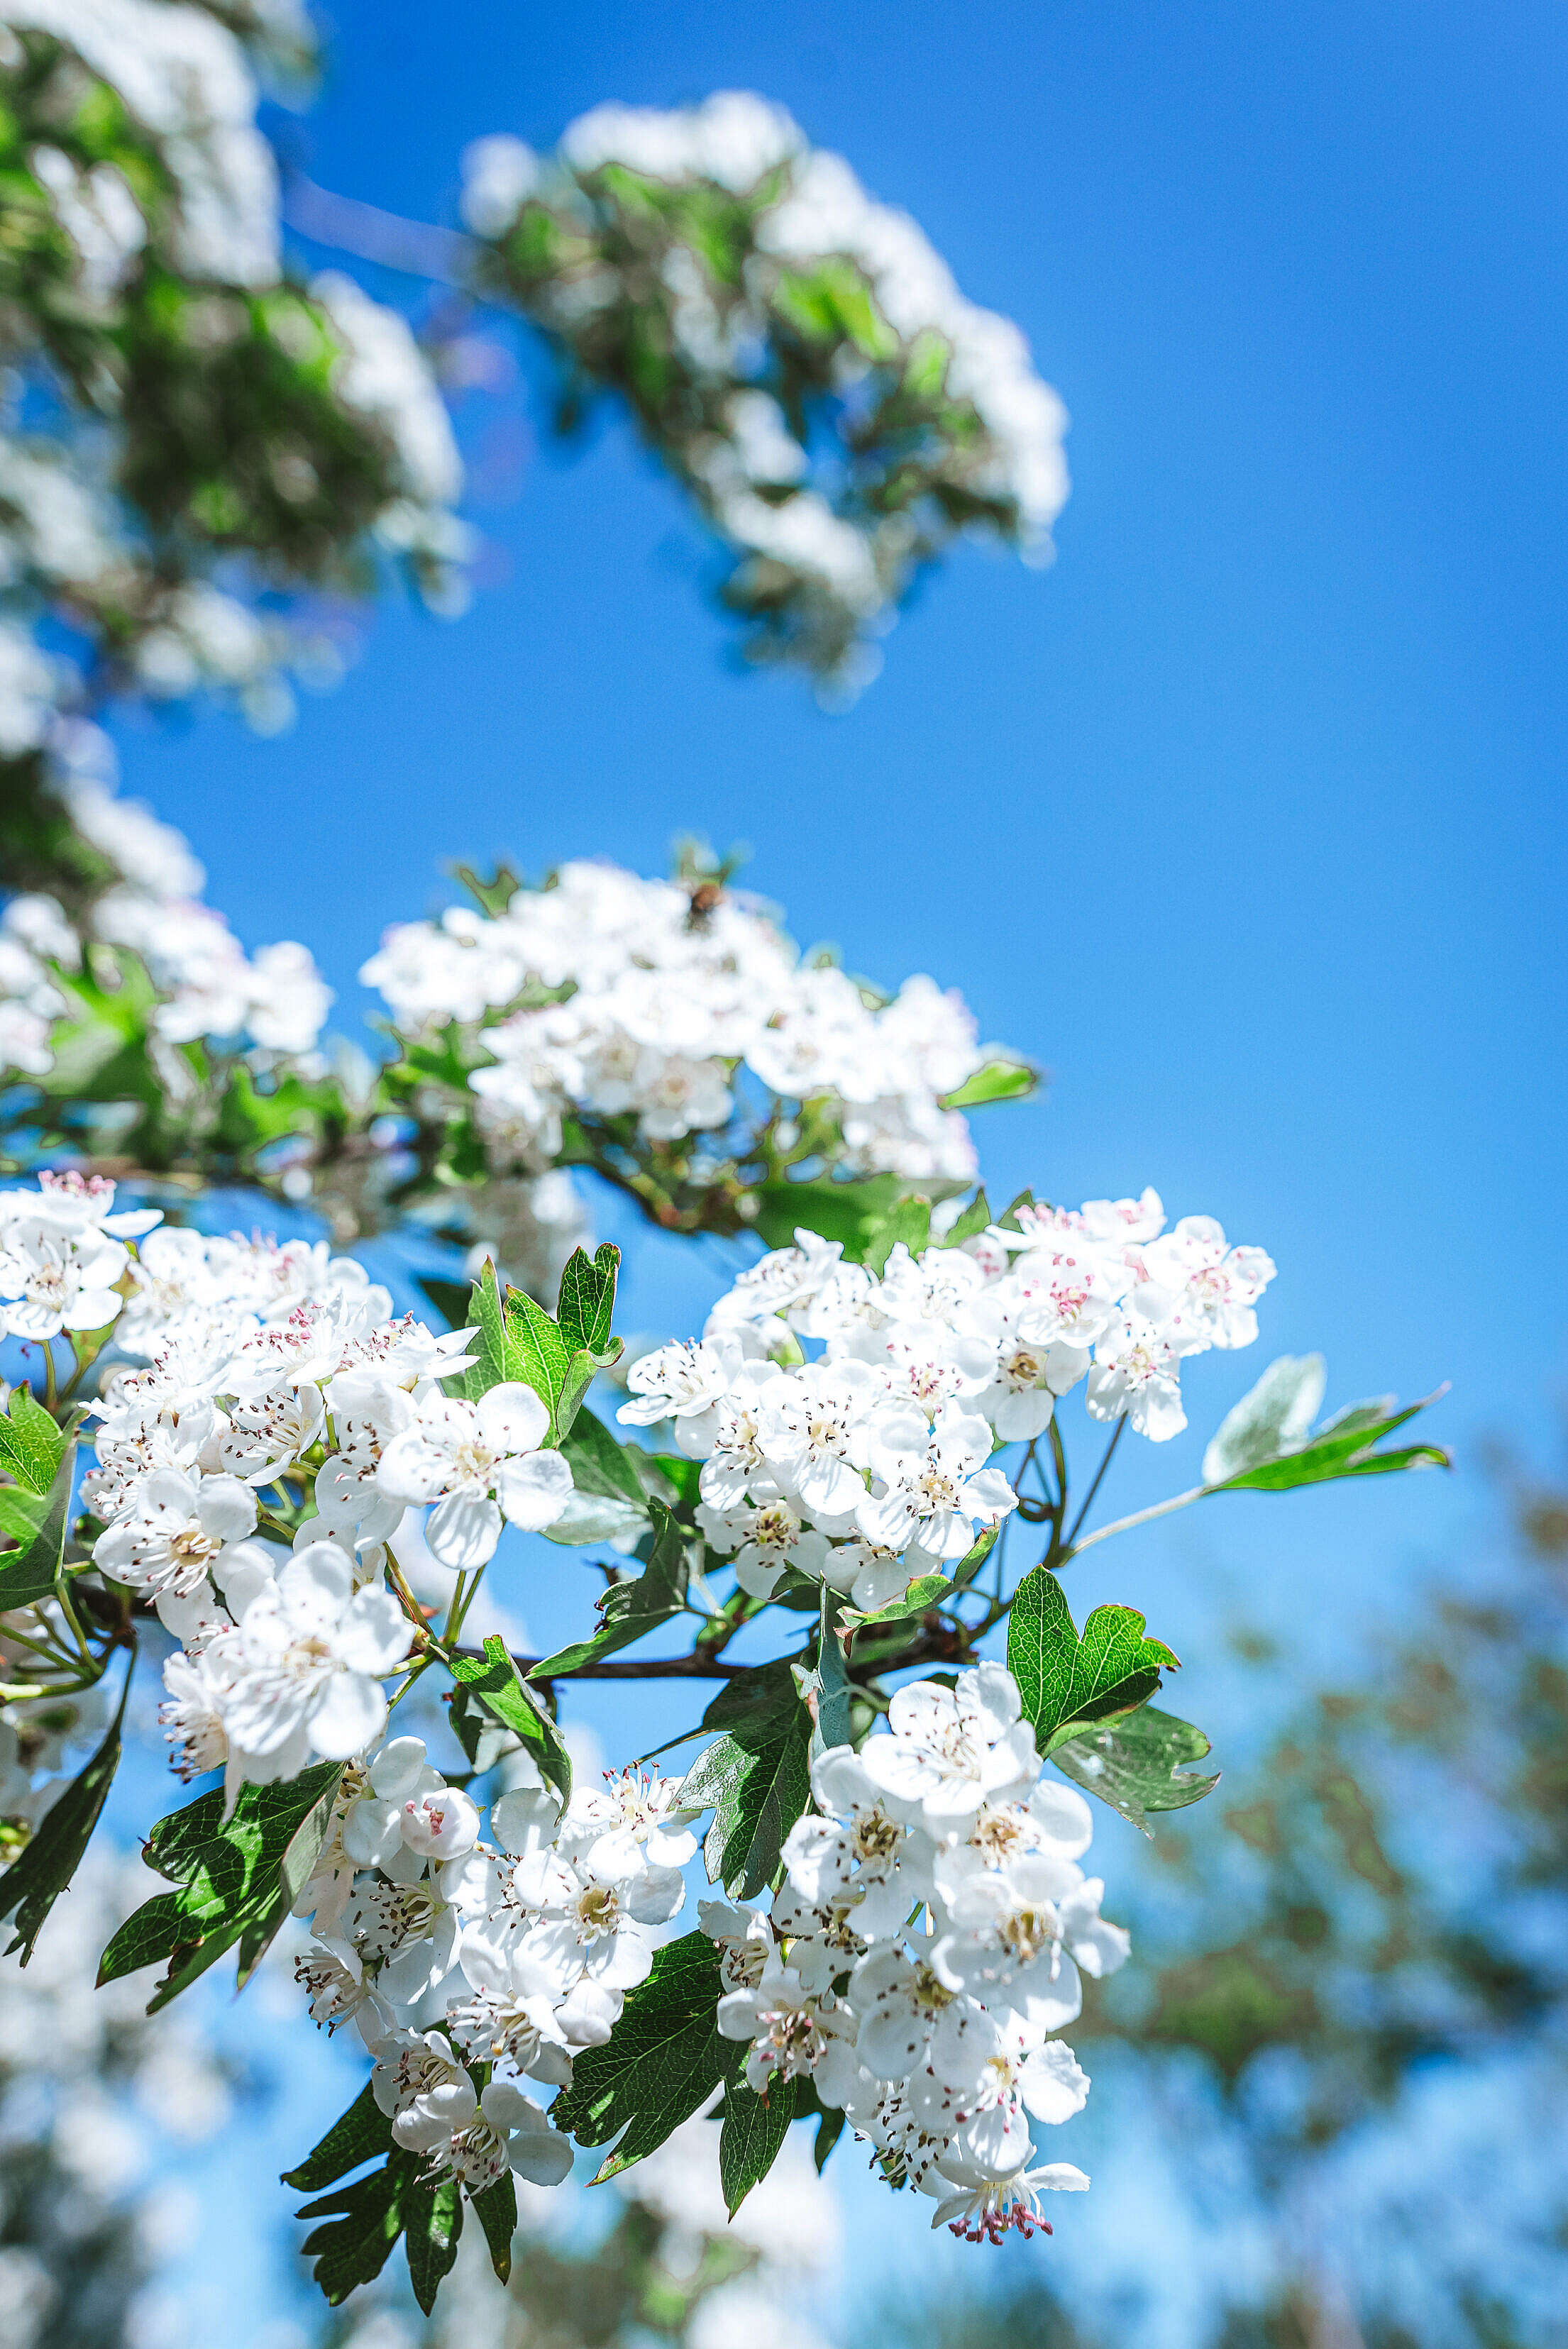 Spring Flowers Against Blue Sky Free Stock Photo